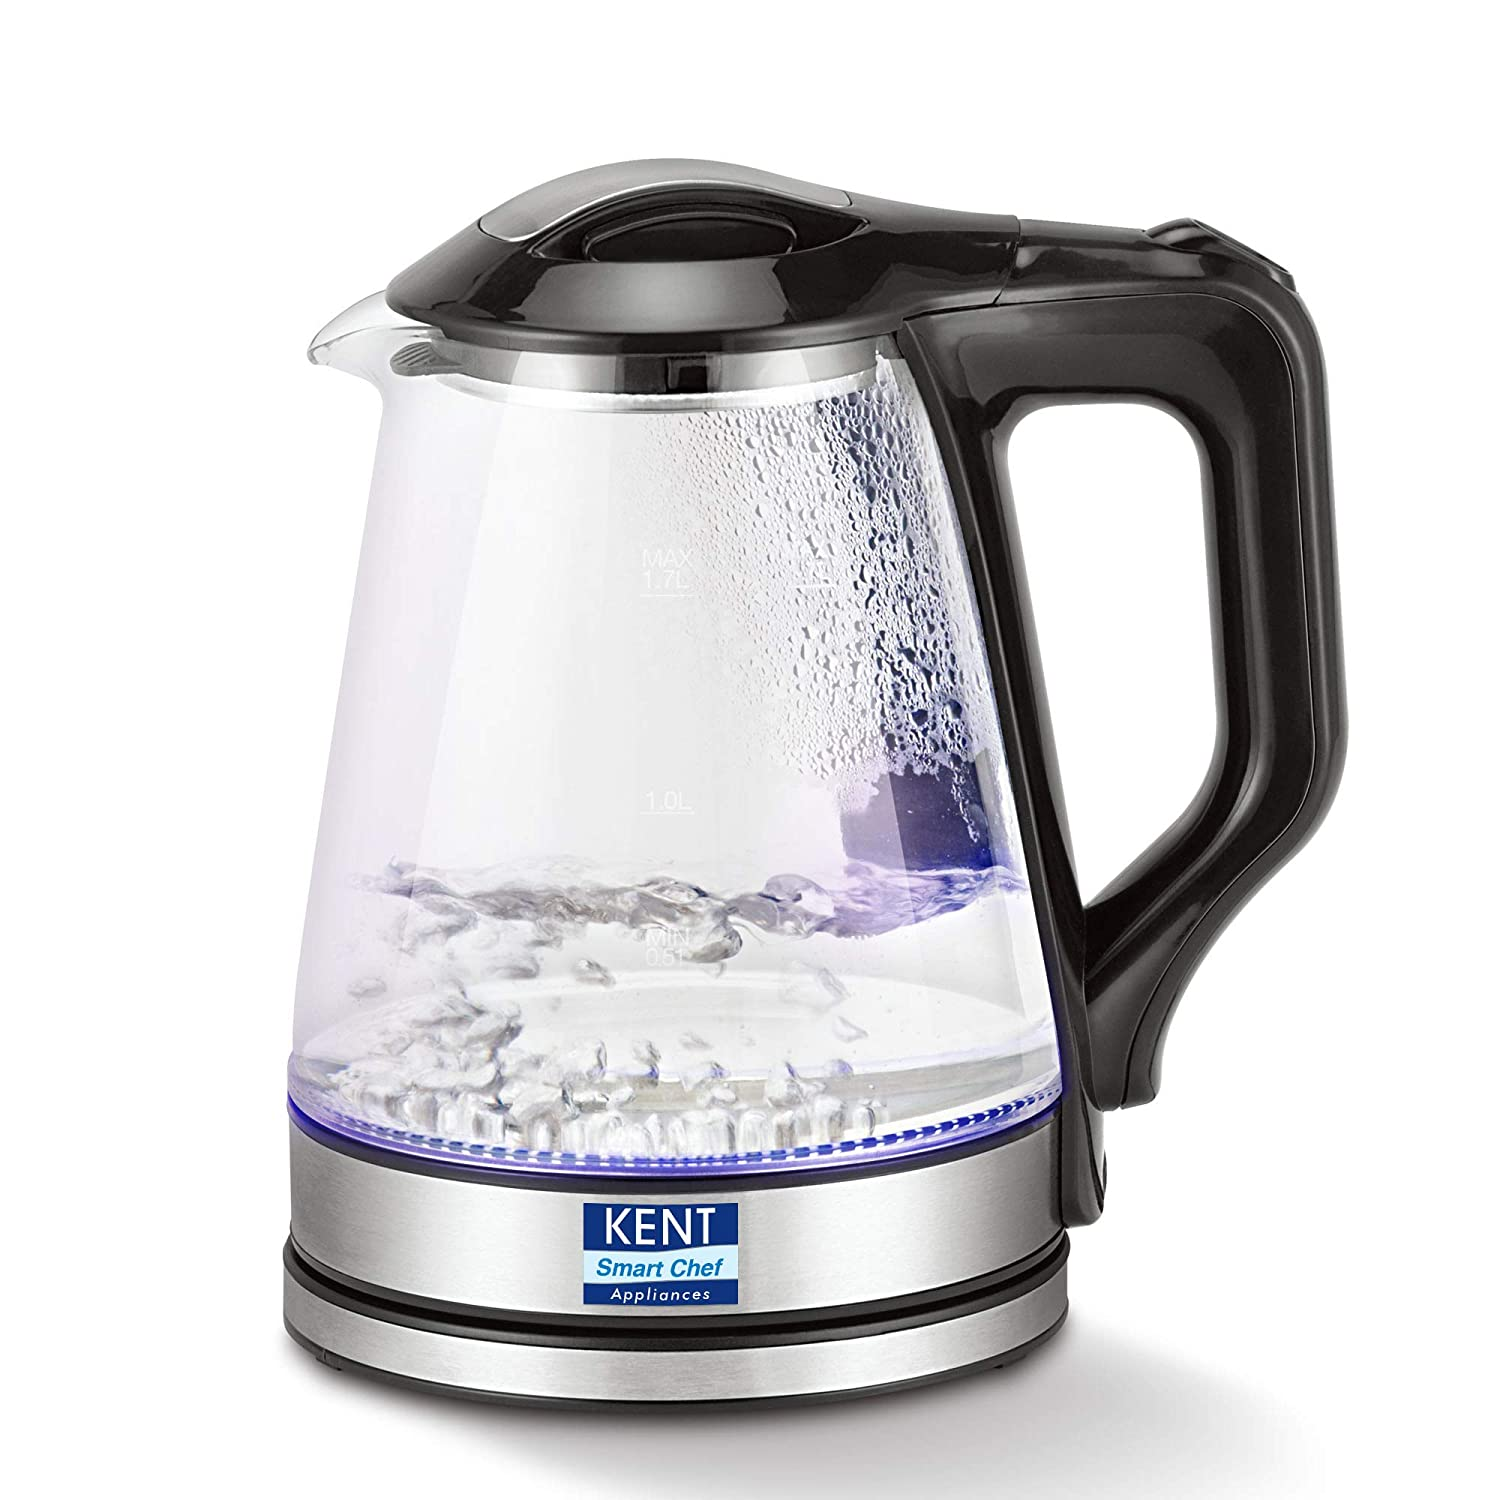 Kent Electric Kettle